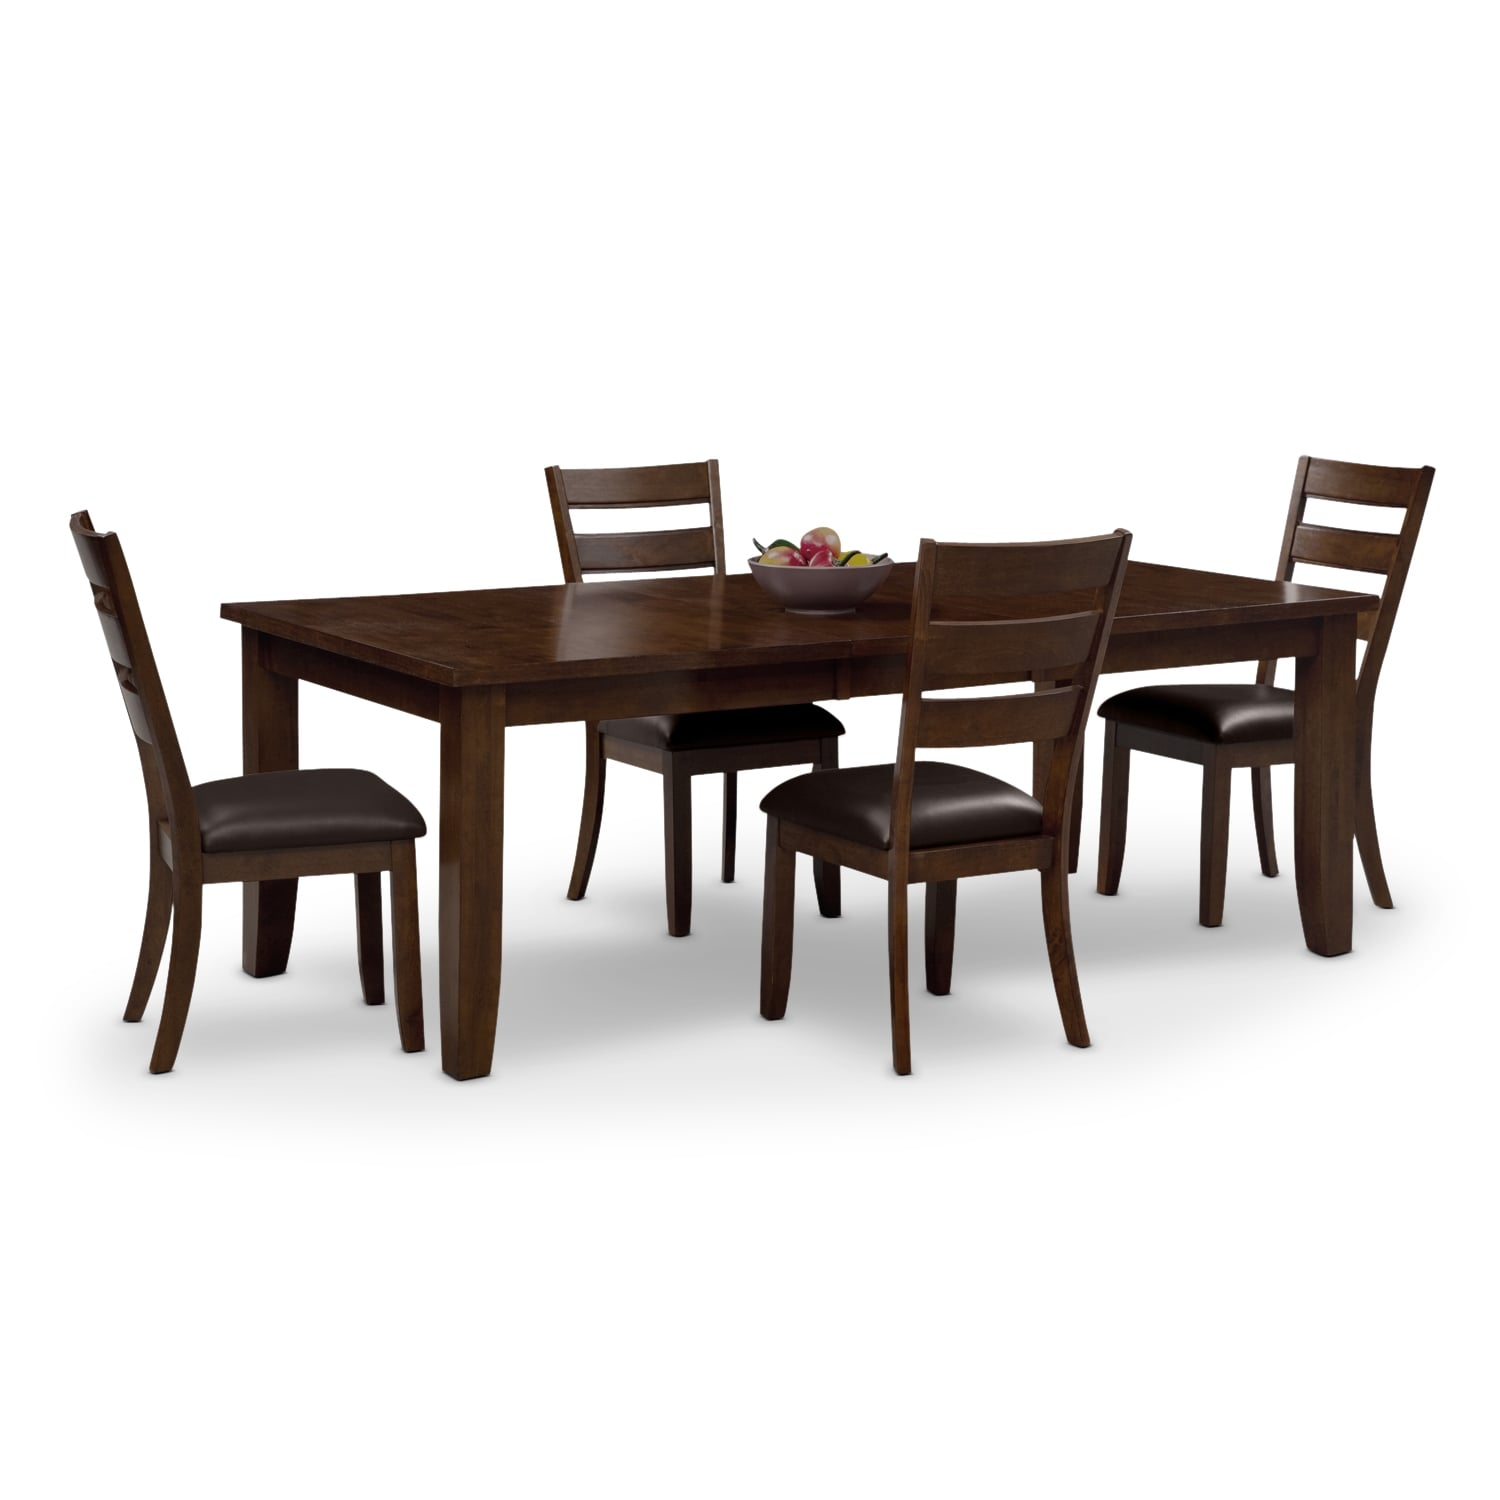 Furniture City Dining Room Suites: Abaco Table And 4 Chairs - Brown